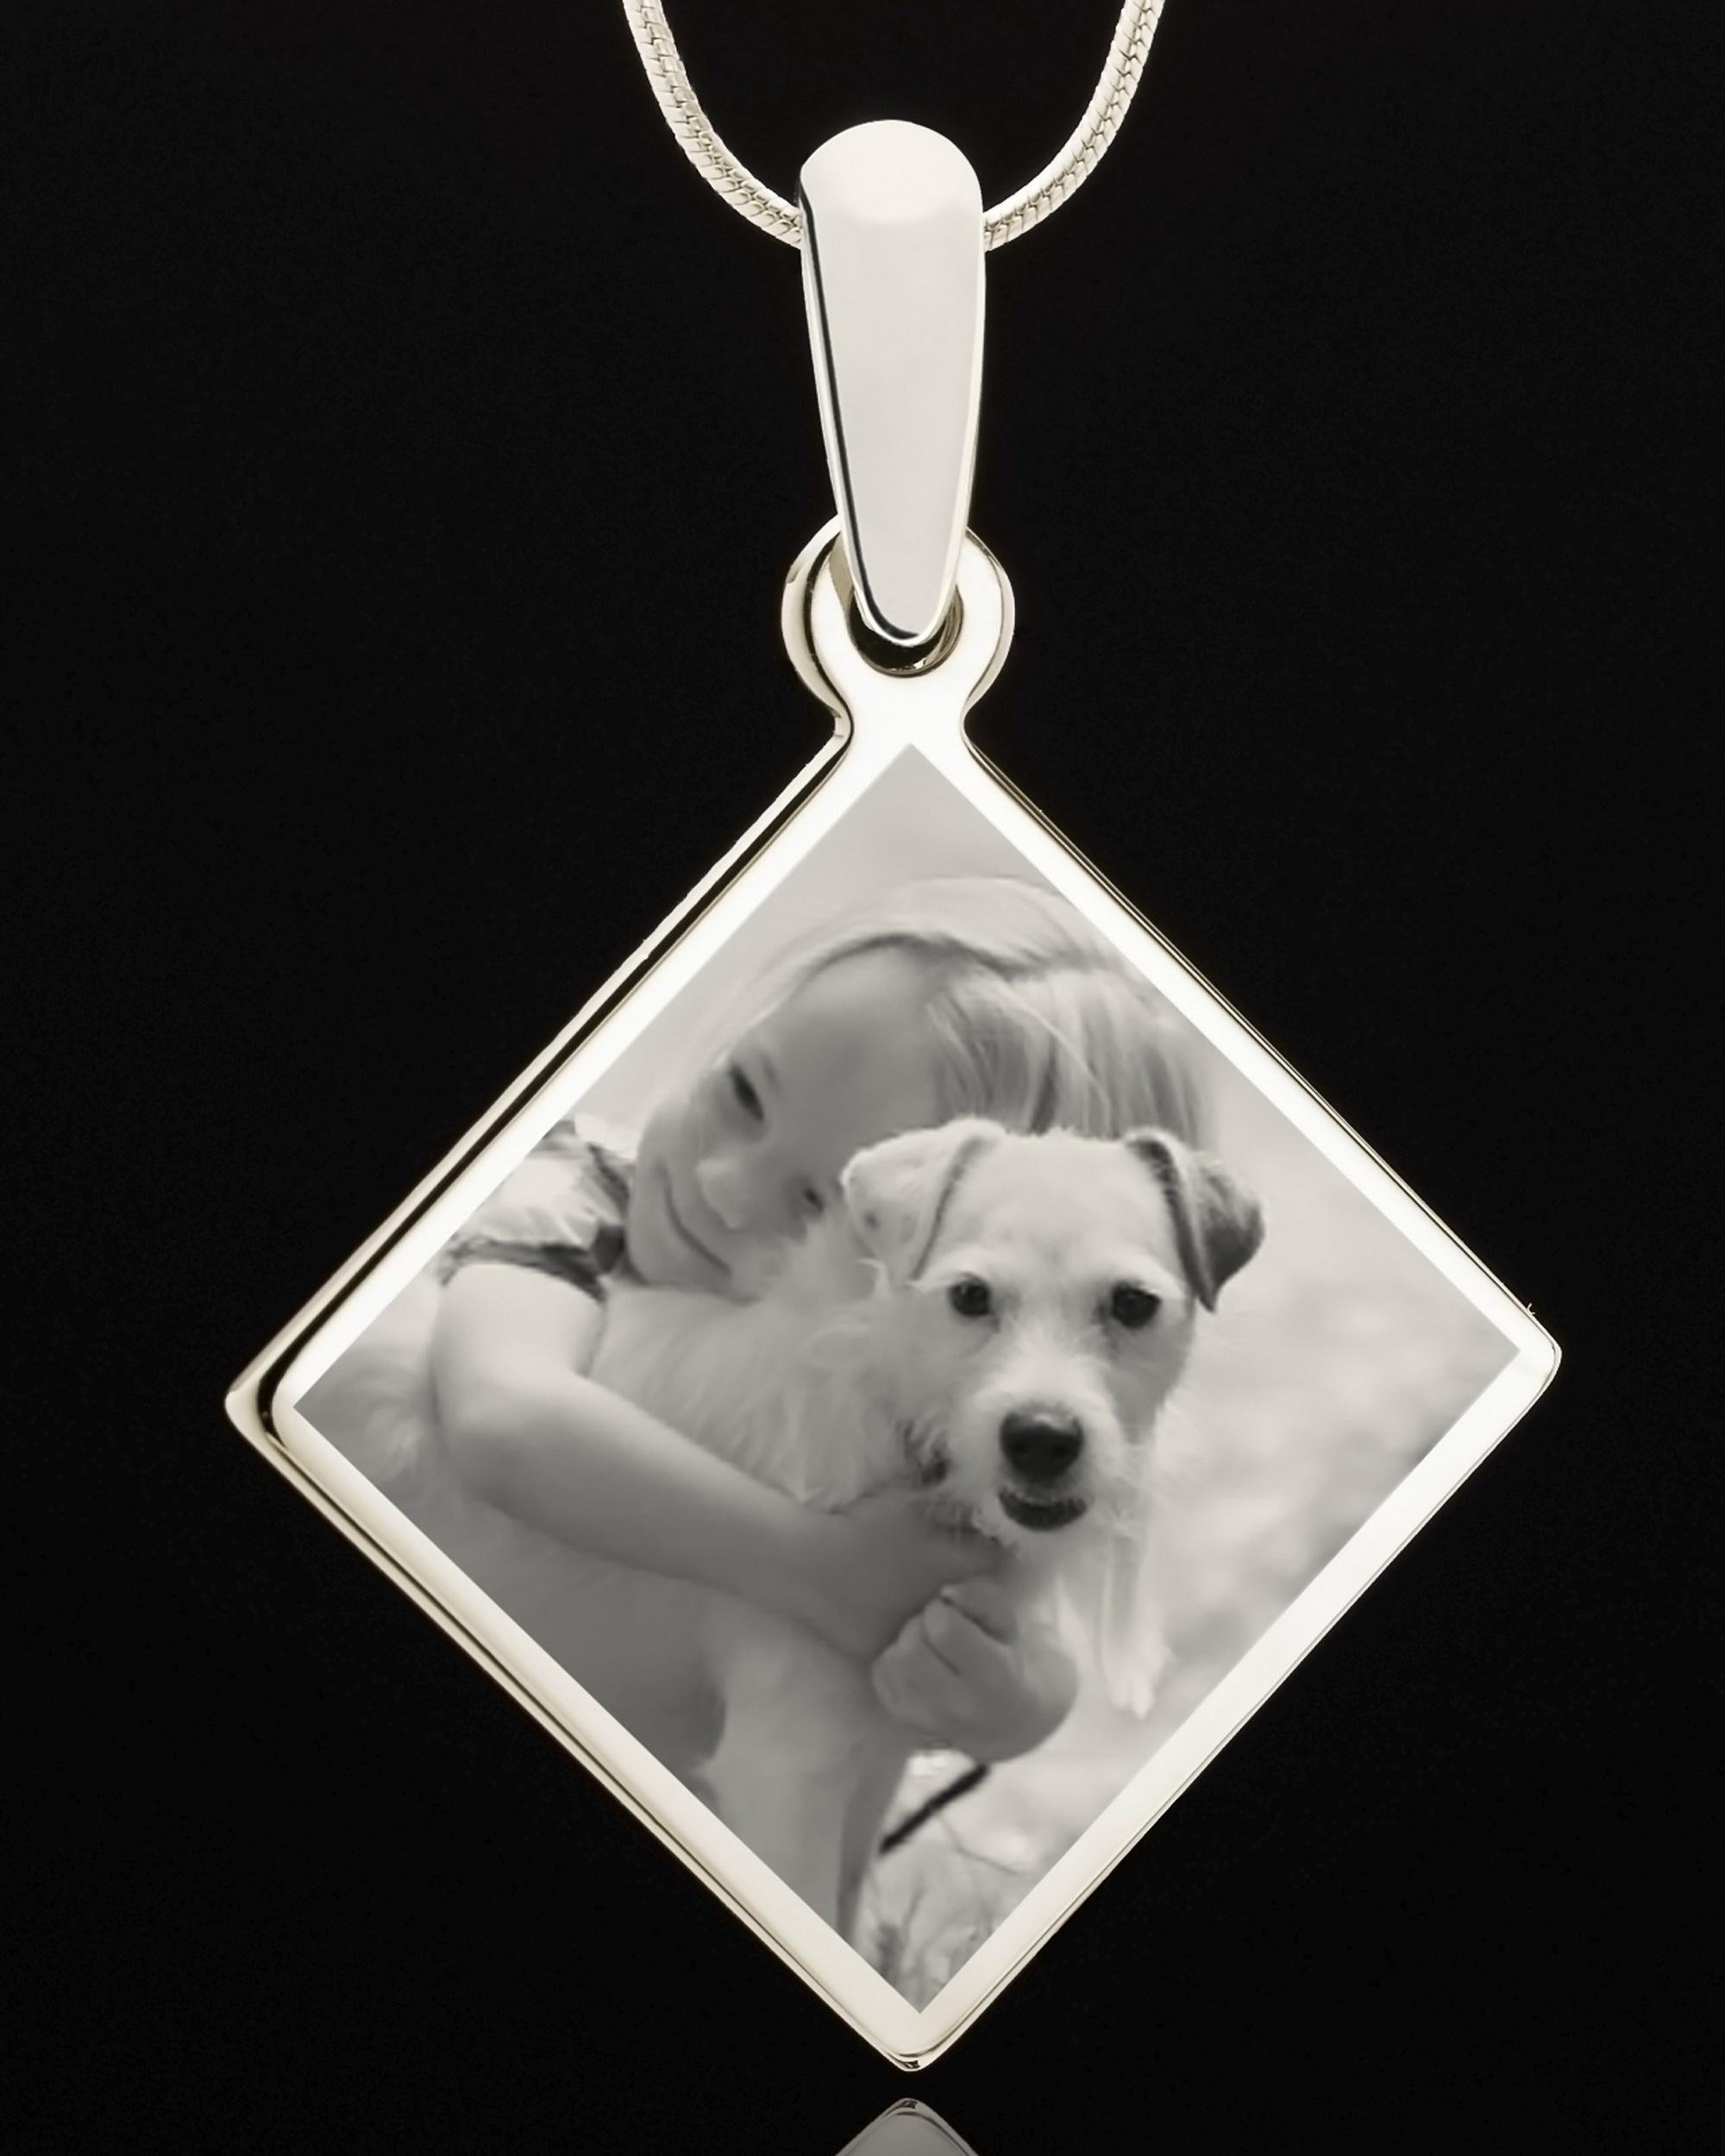 Jewelry Keepsakes81-939Photo Eng Diamond Pet Pendant Stainless.jpg807